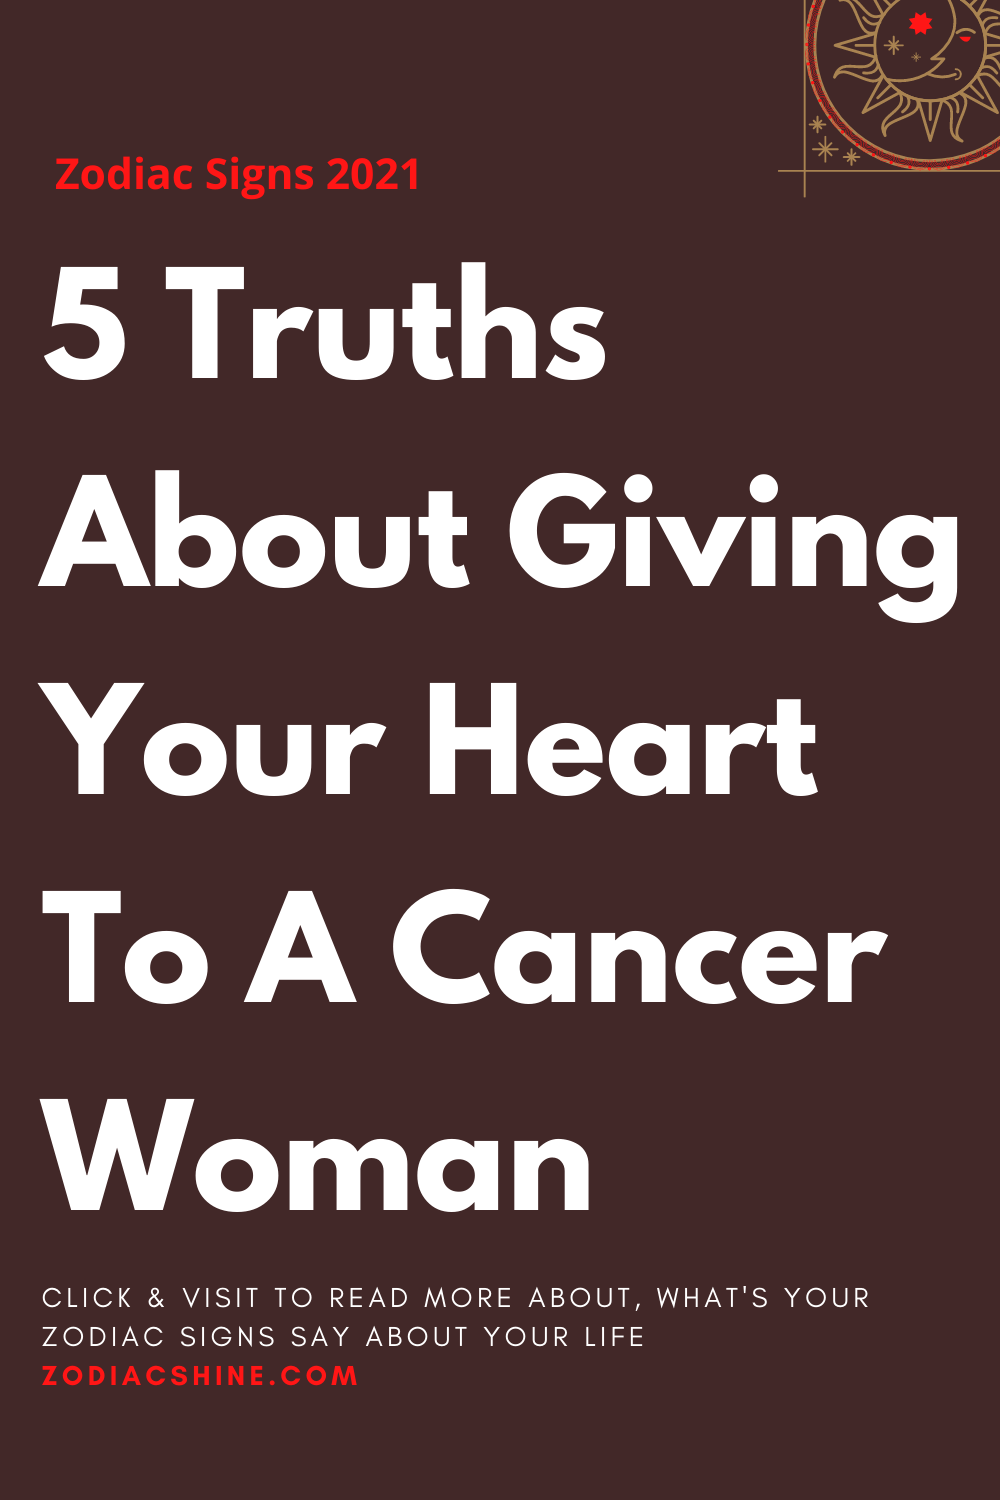 5 Truths About Giving Your Heart To A Cancer Woman